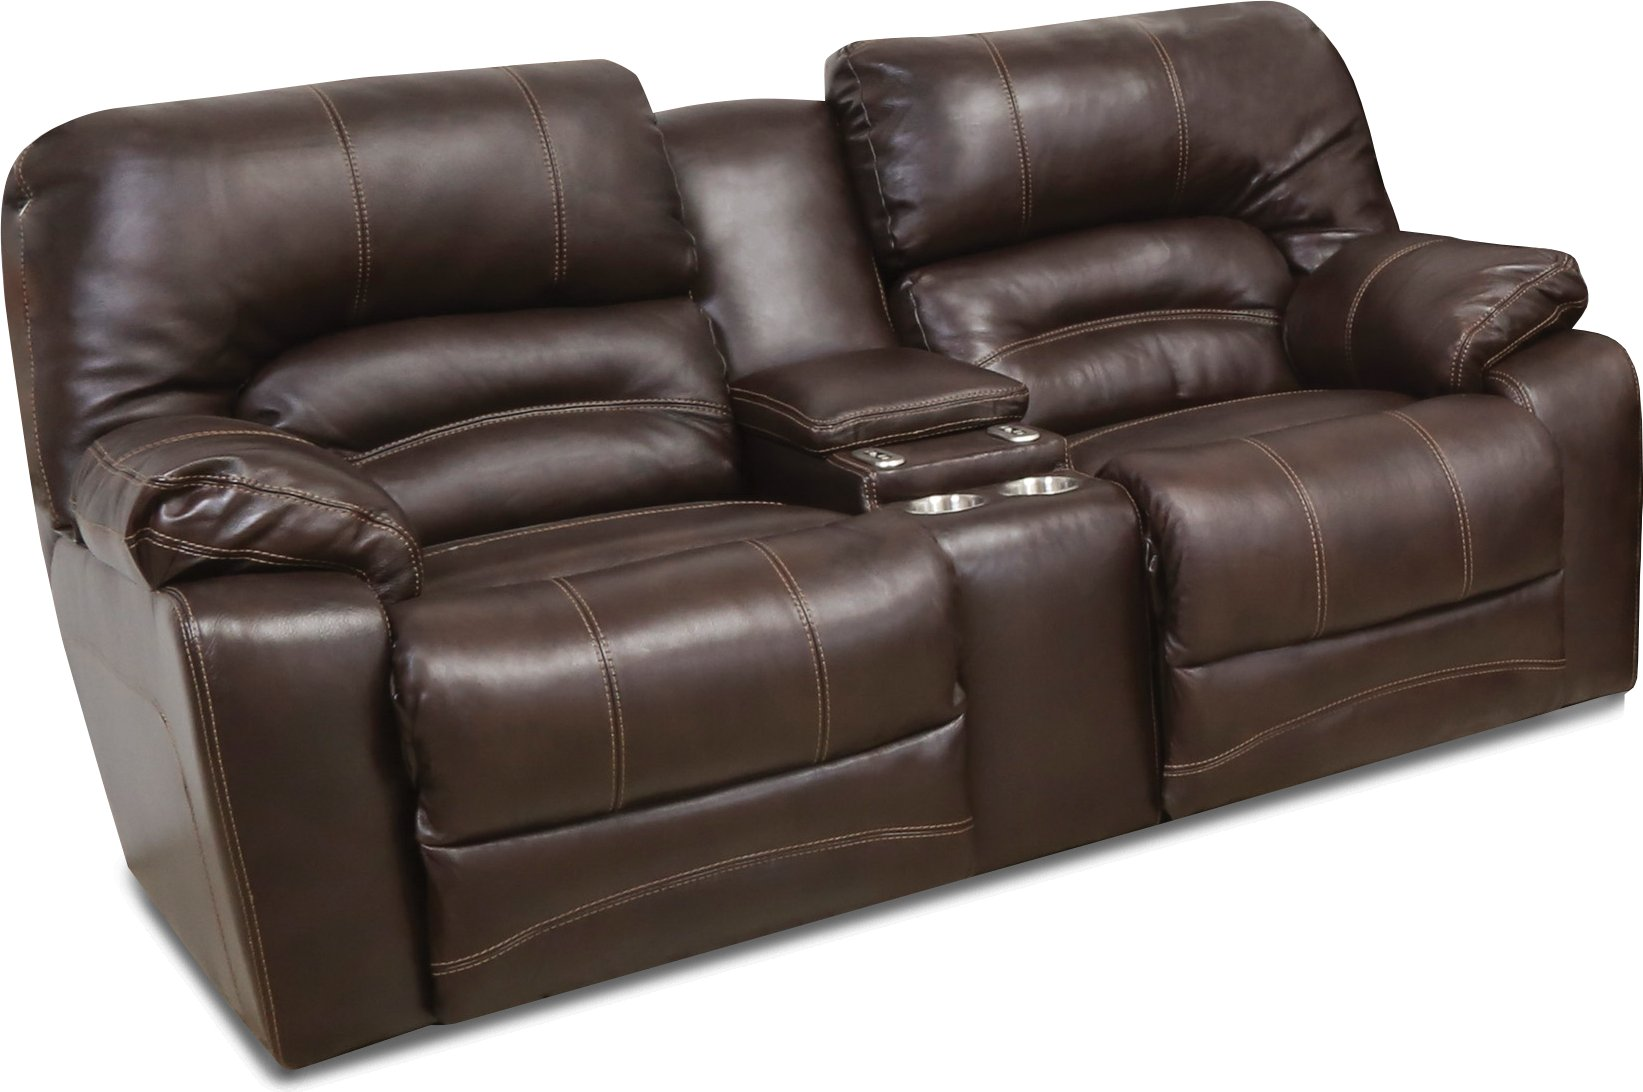 Chocolate brown leather power reclining sofa loveseat legacy rc willey furniture store Chocolate loveseat